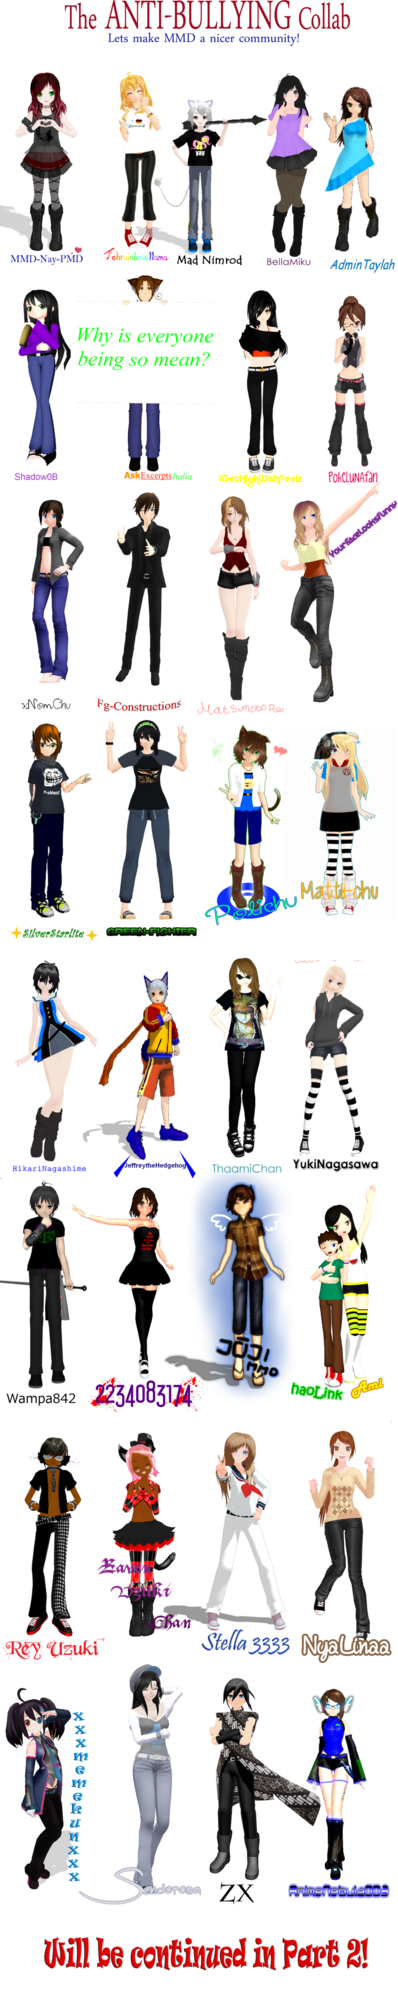 Anti collab by mmd. Crying clipart victim bullying